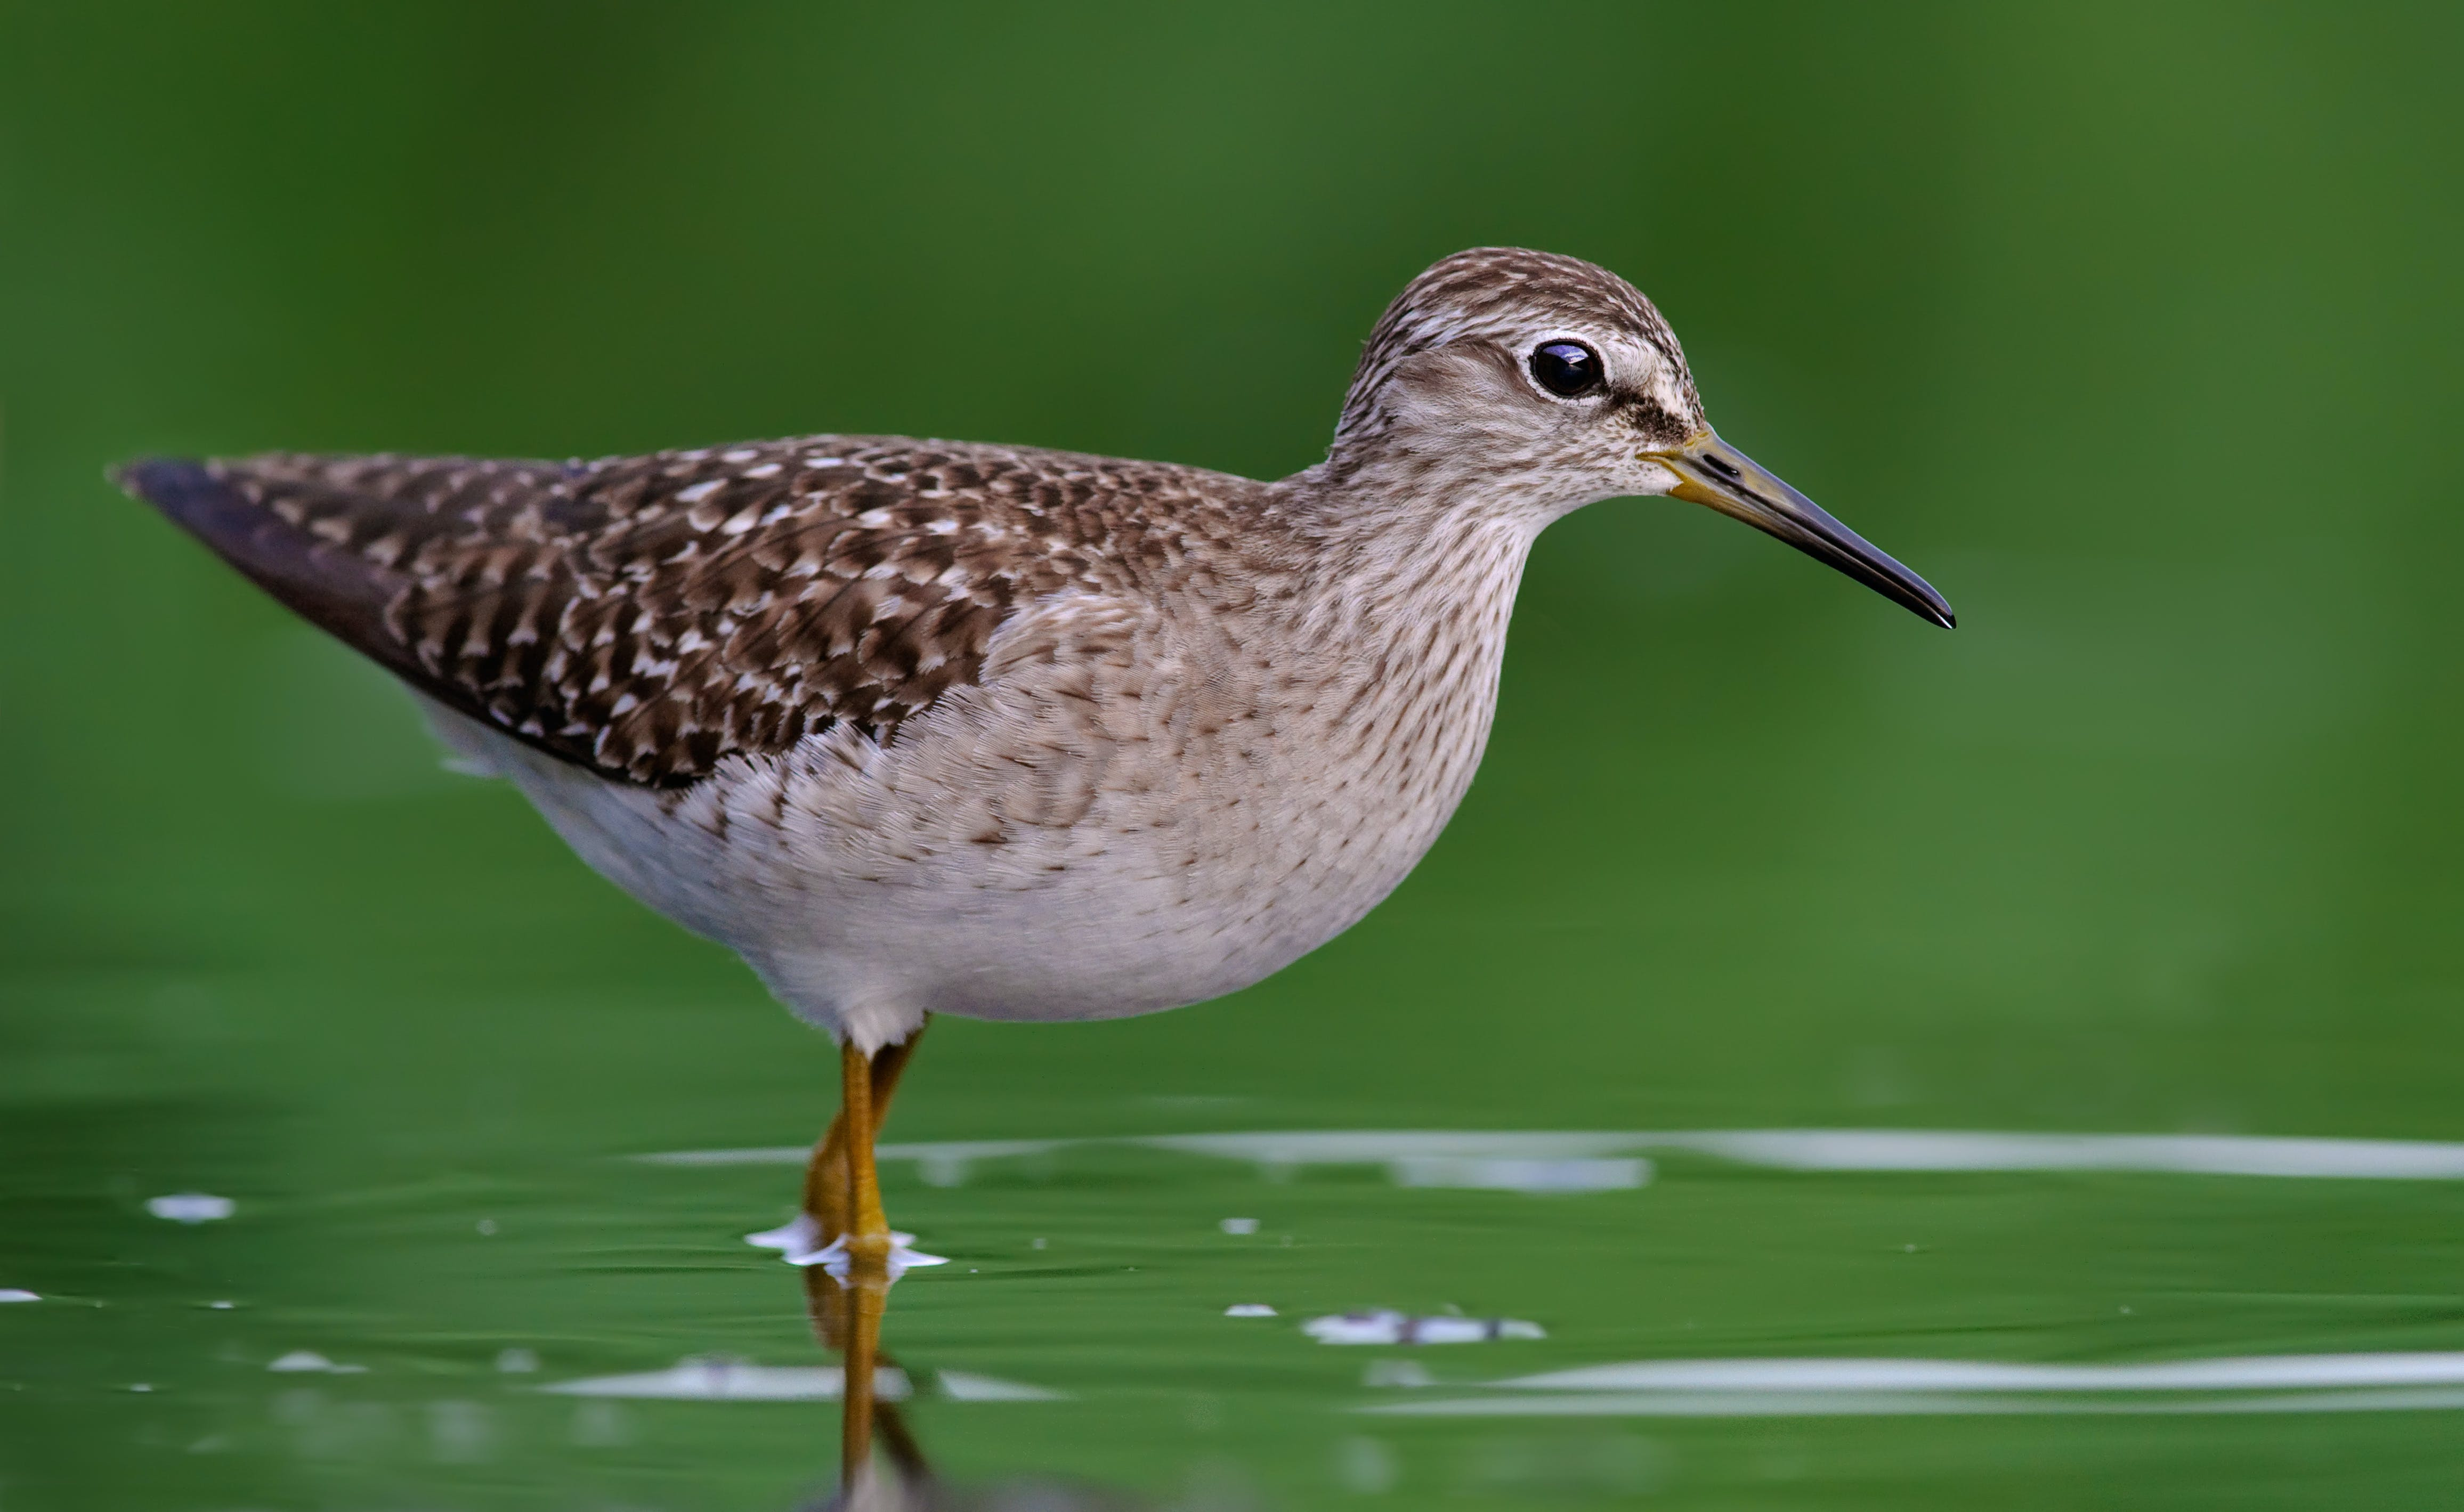 Close-Up Photography of Willet Bird on Water